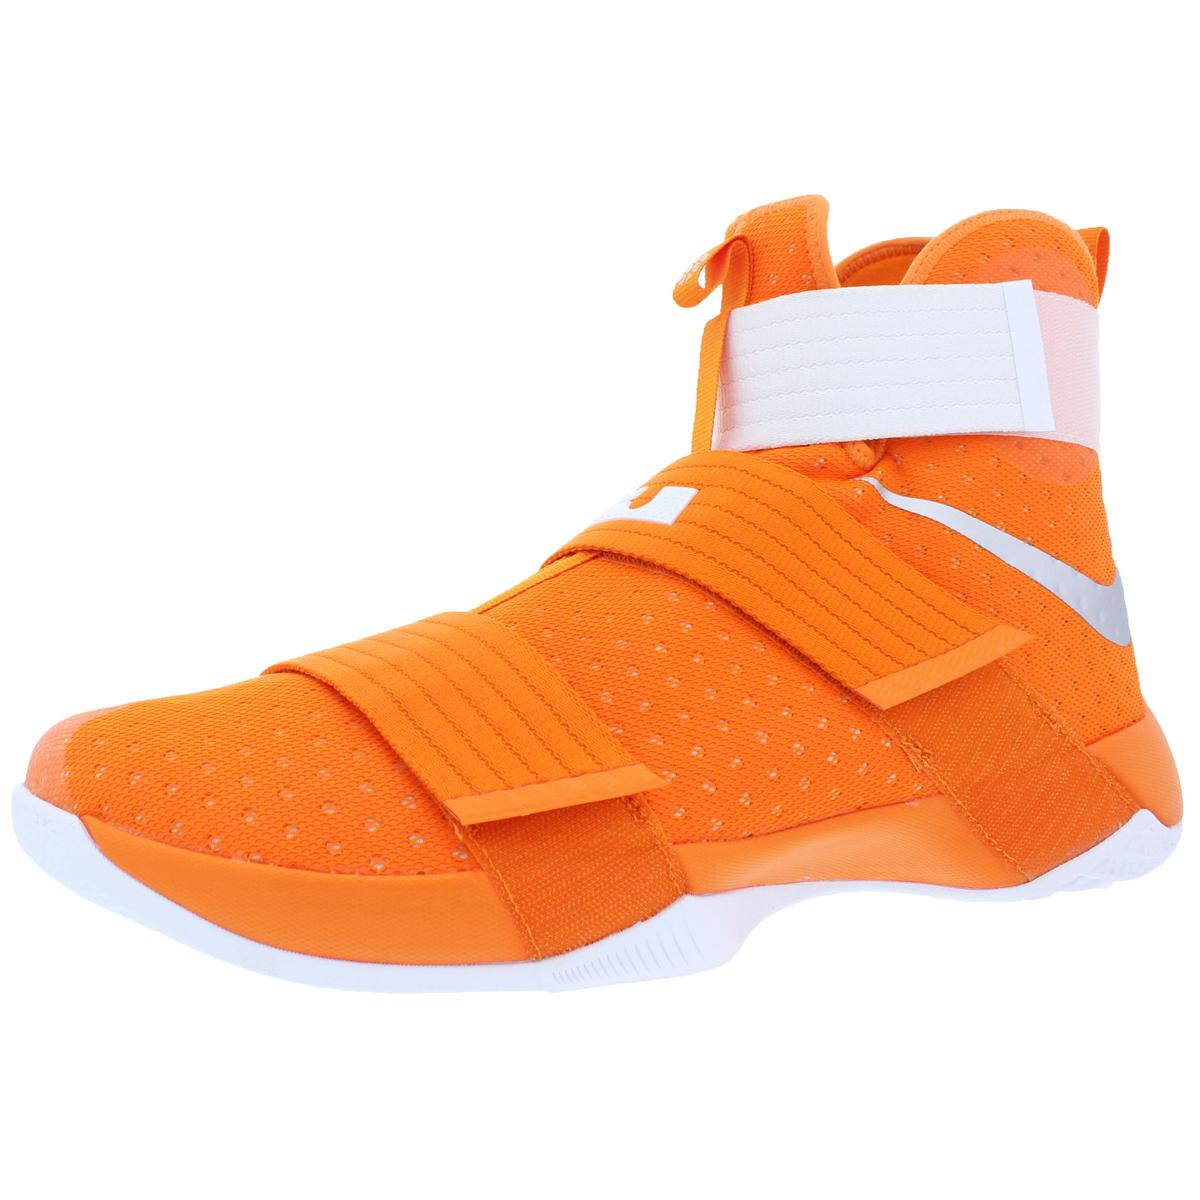 Nike LeBron Soldier 10 homme Mesh chaussures High-Top athlétique Trainer Basketball chaussures Mesh 8140ba